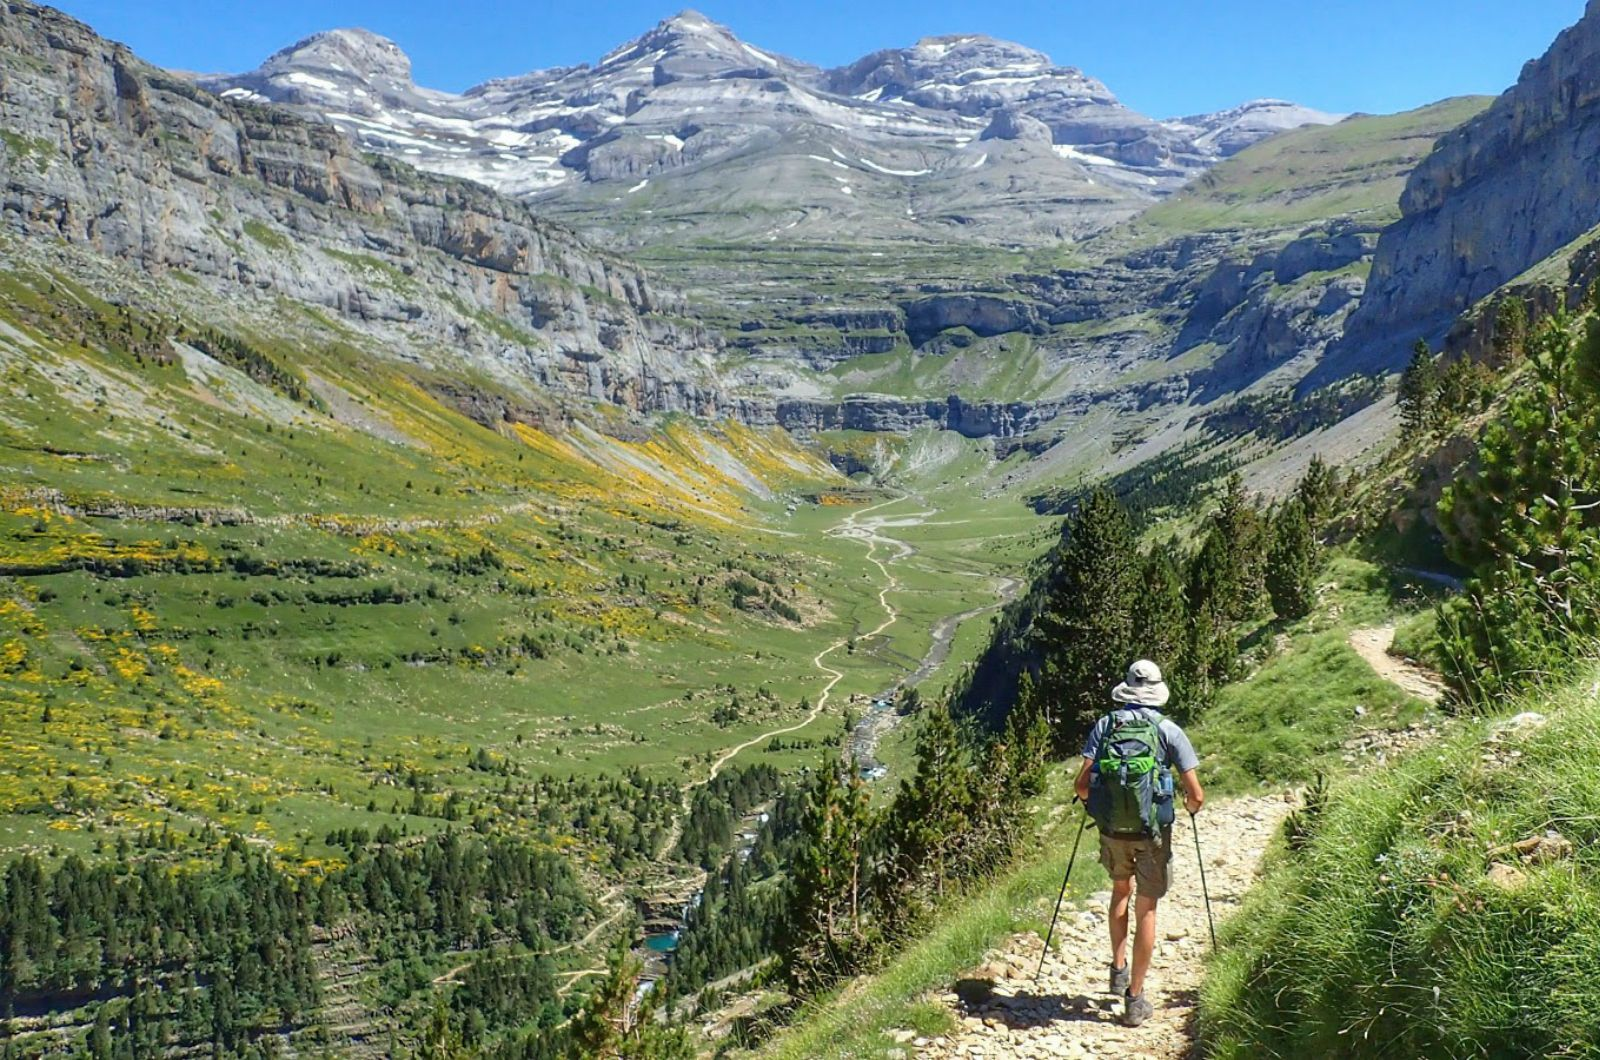 Looking down the Ordesa valley in the Ordesa national Park on Aragon Active Self Guided Walking Holiday Spain